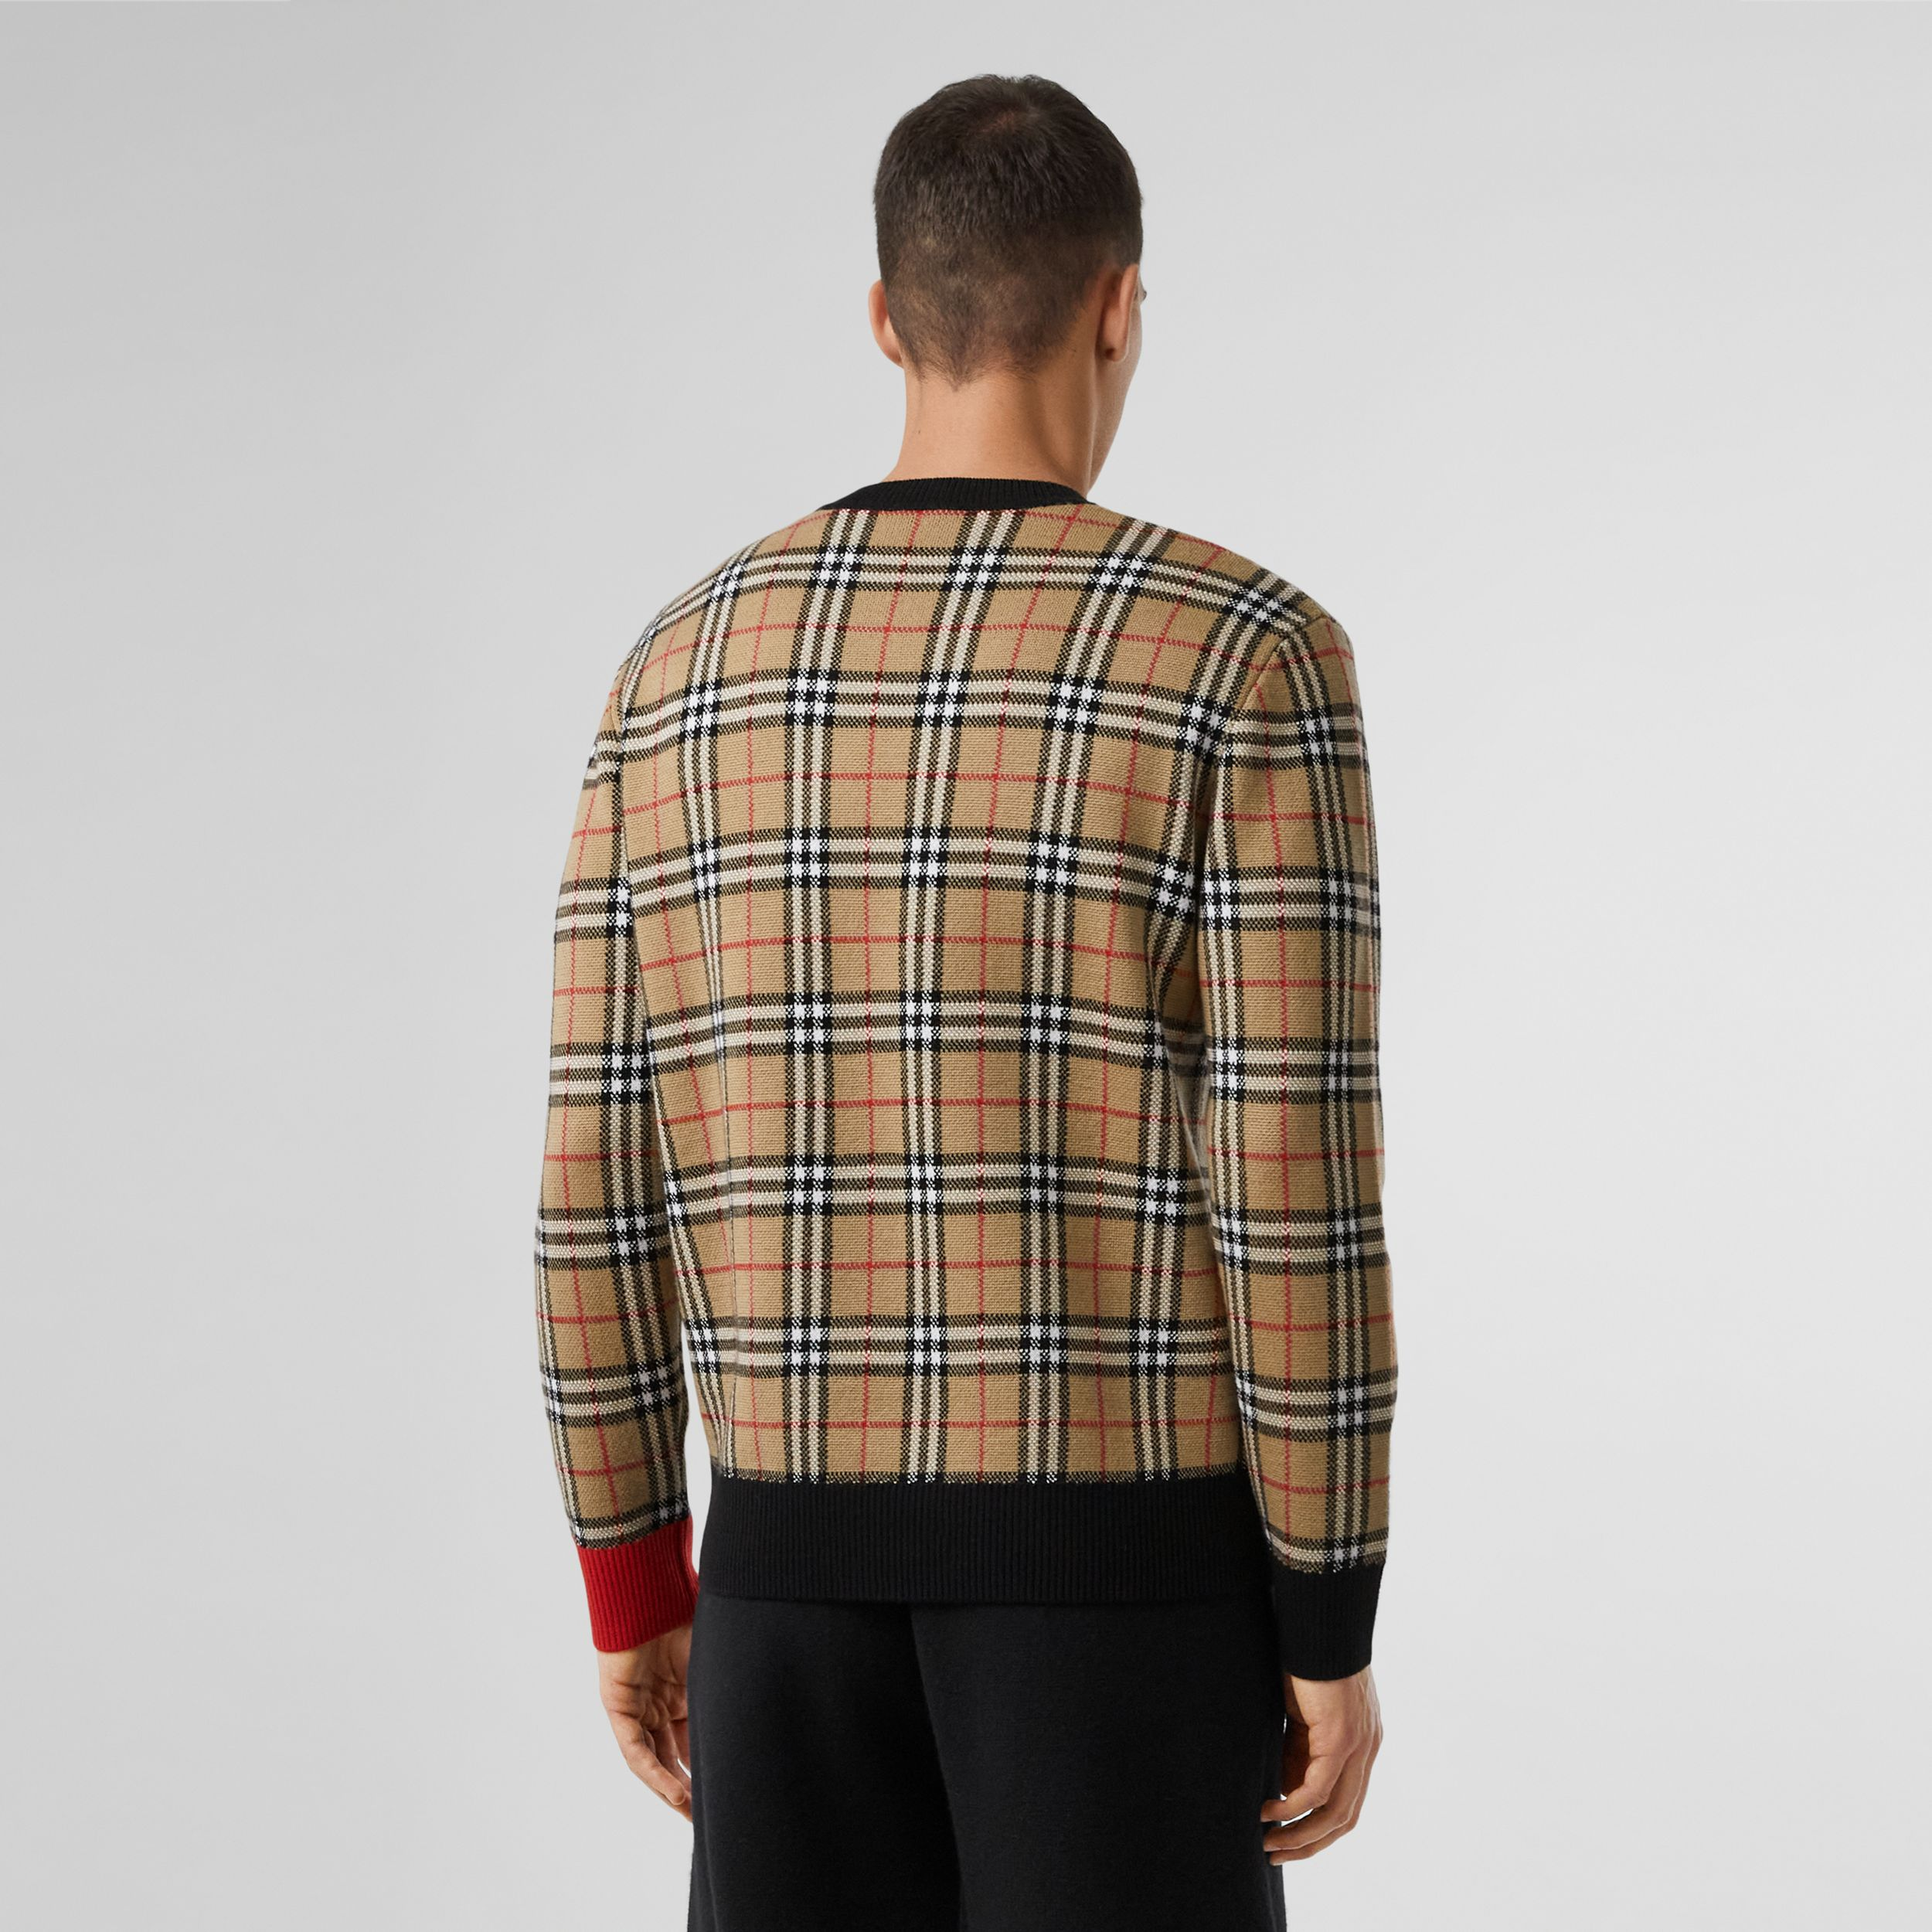 Logo Check Wool Cotton Jacquard Sweater in Archive Beige - Men | Burberry - 3